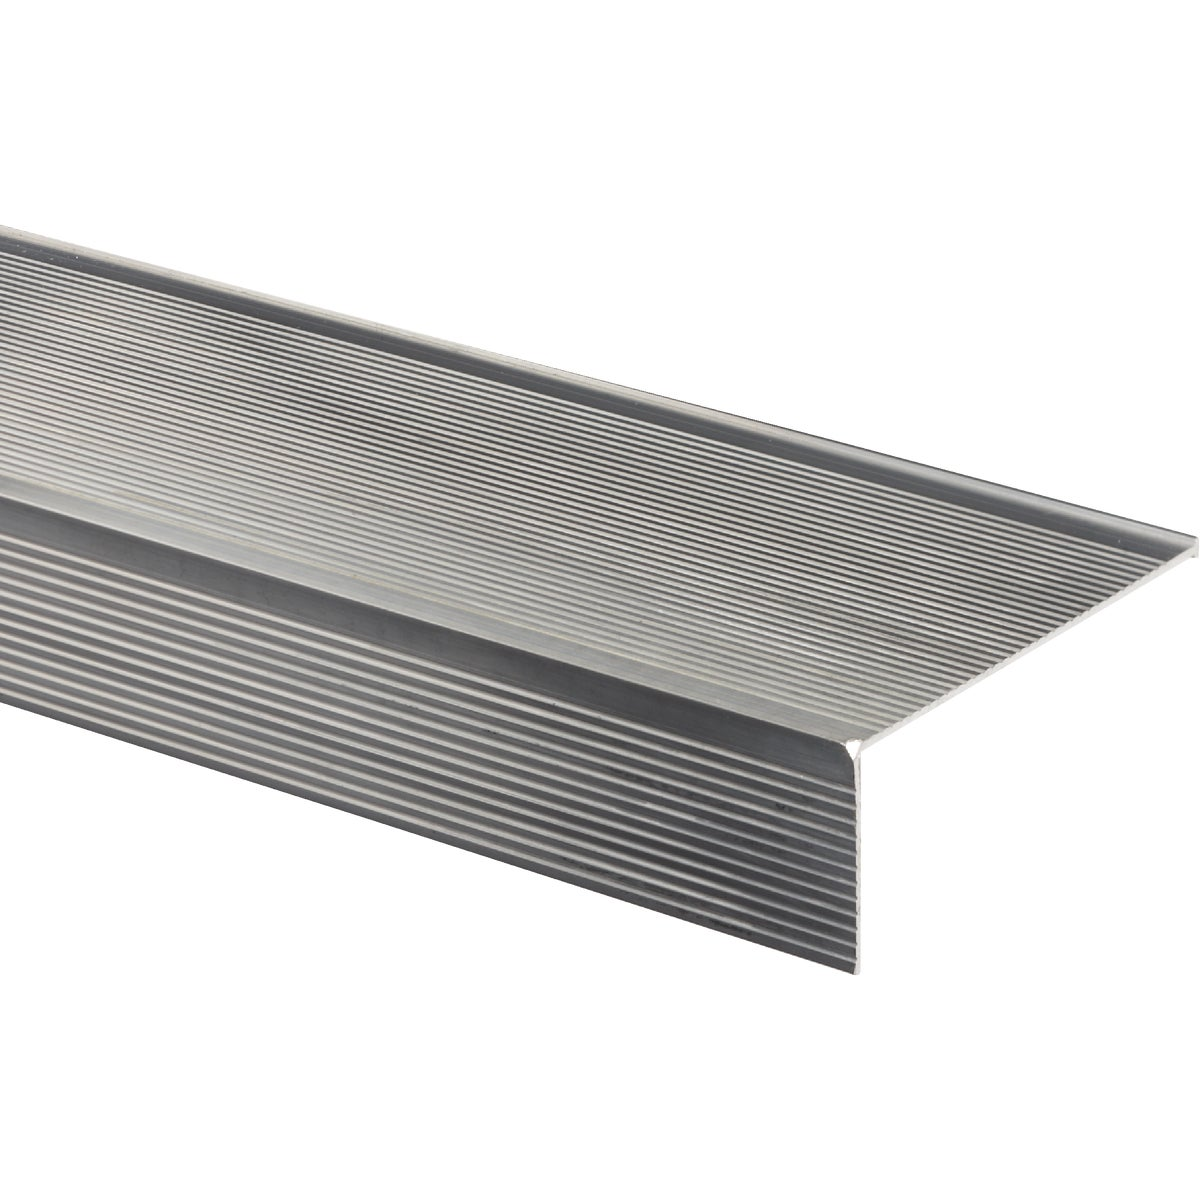 4-1/2X6 MILL SILL NOSING - 69844 by M D Building Prod